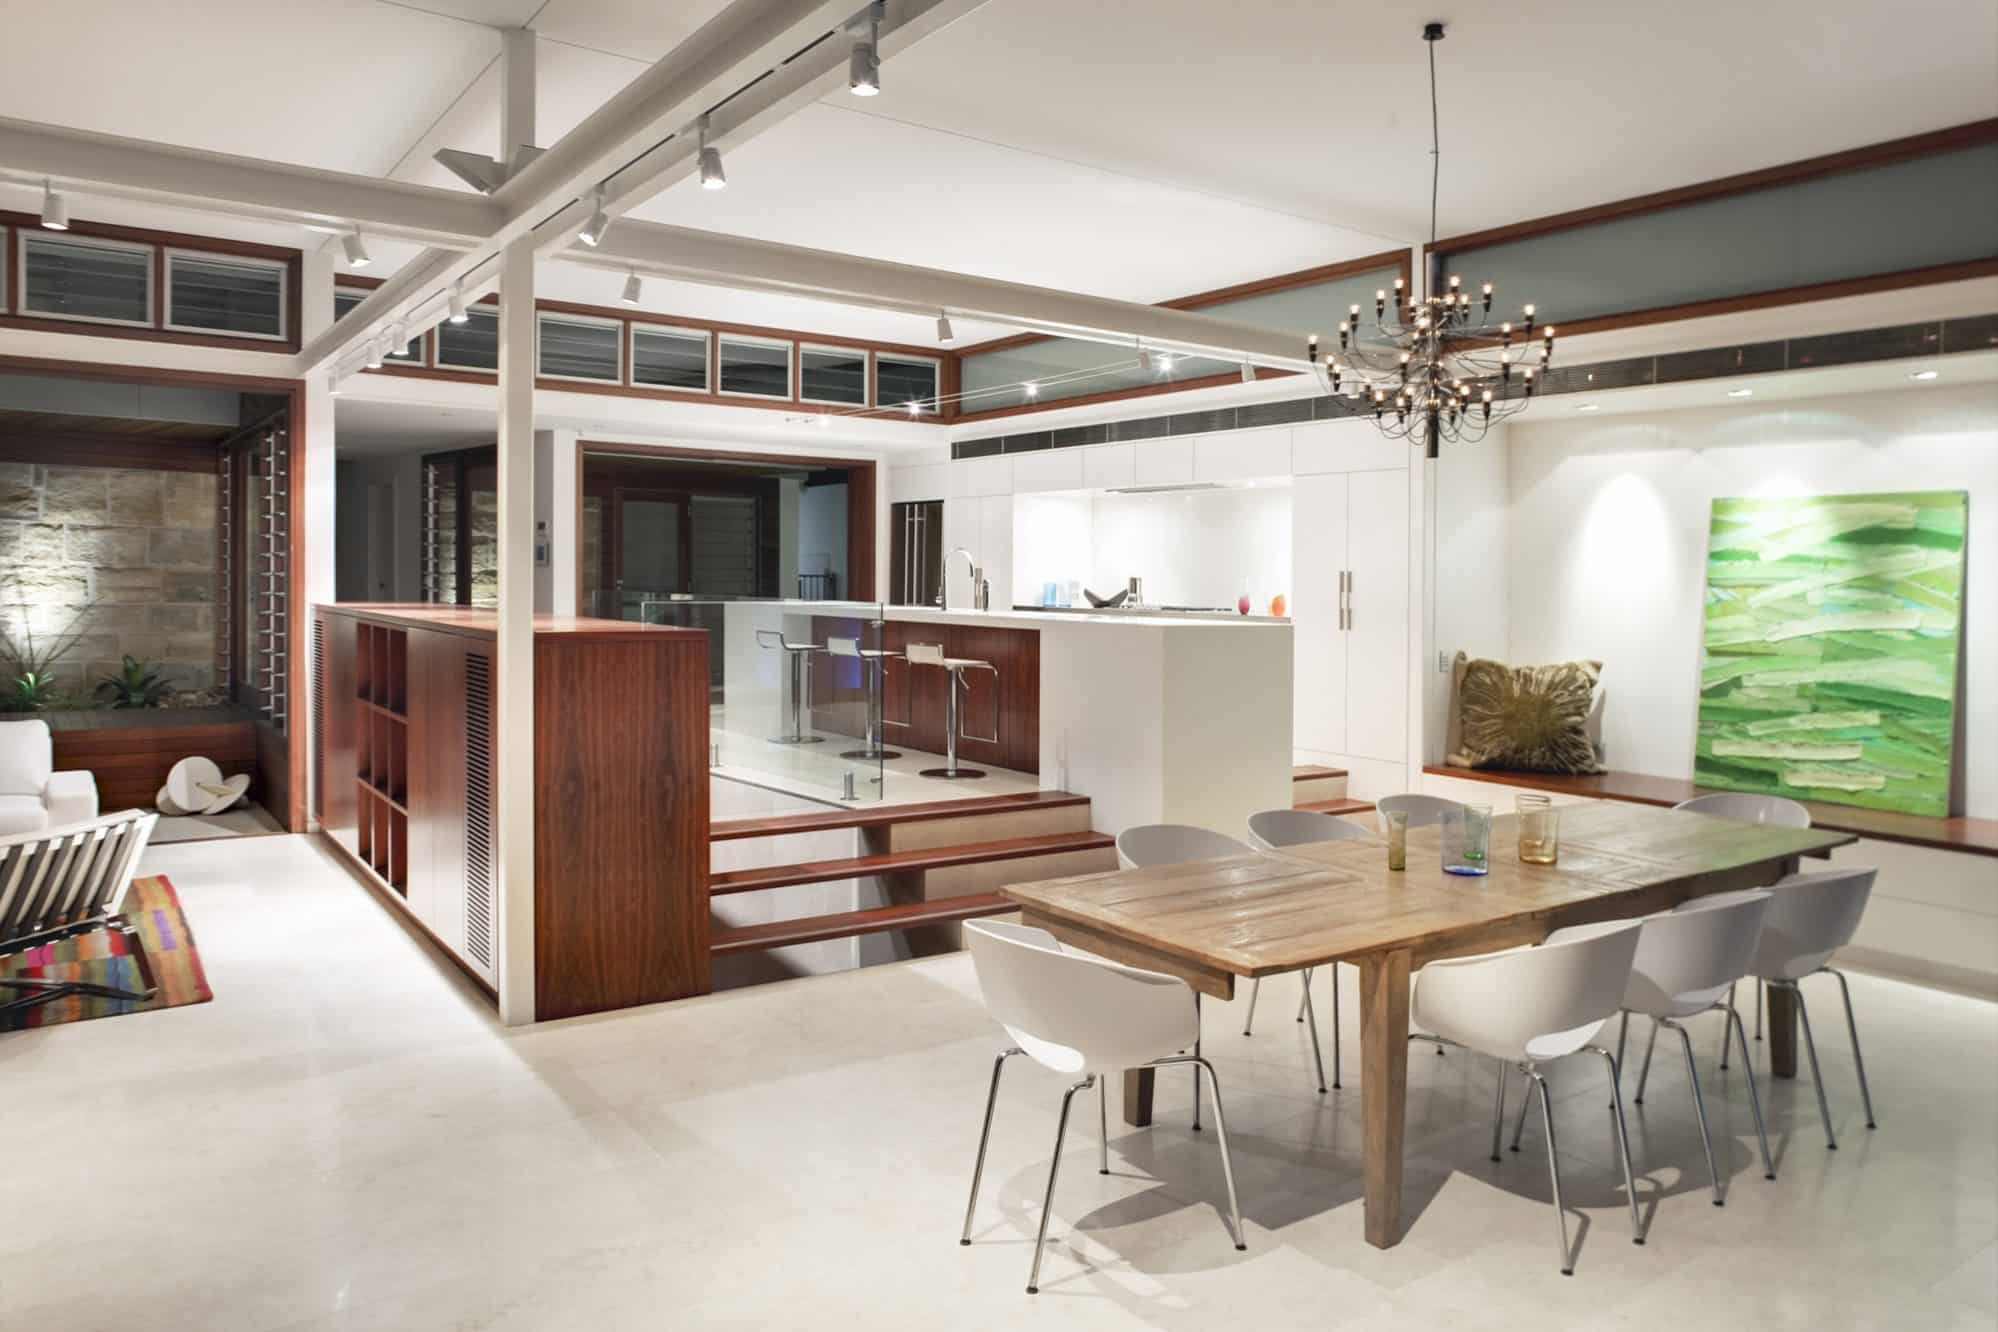 The kitchen sits within the corner of a large open plan room